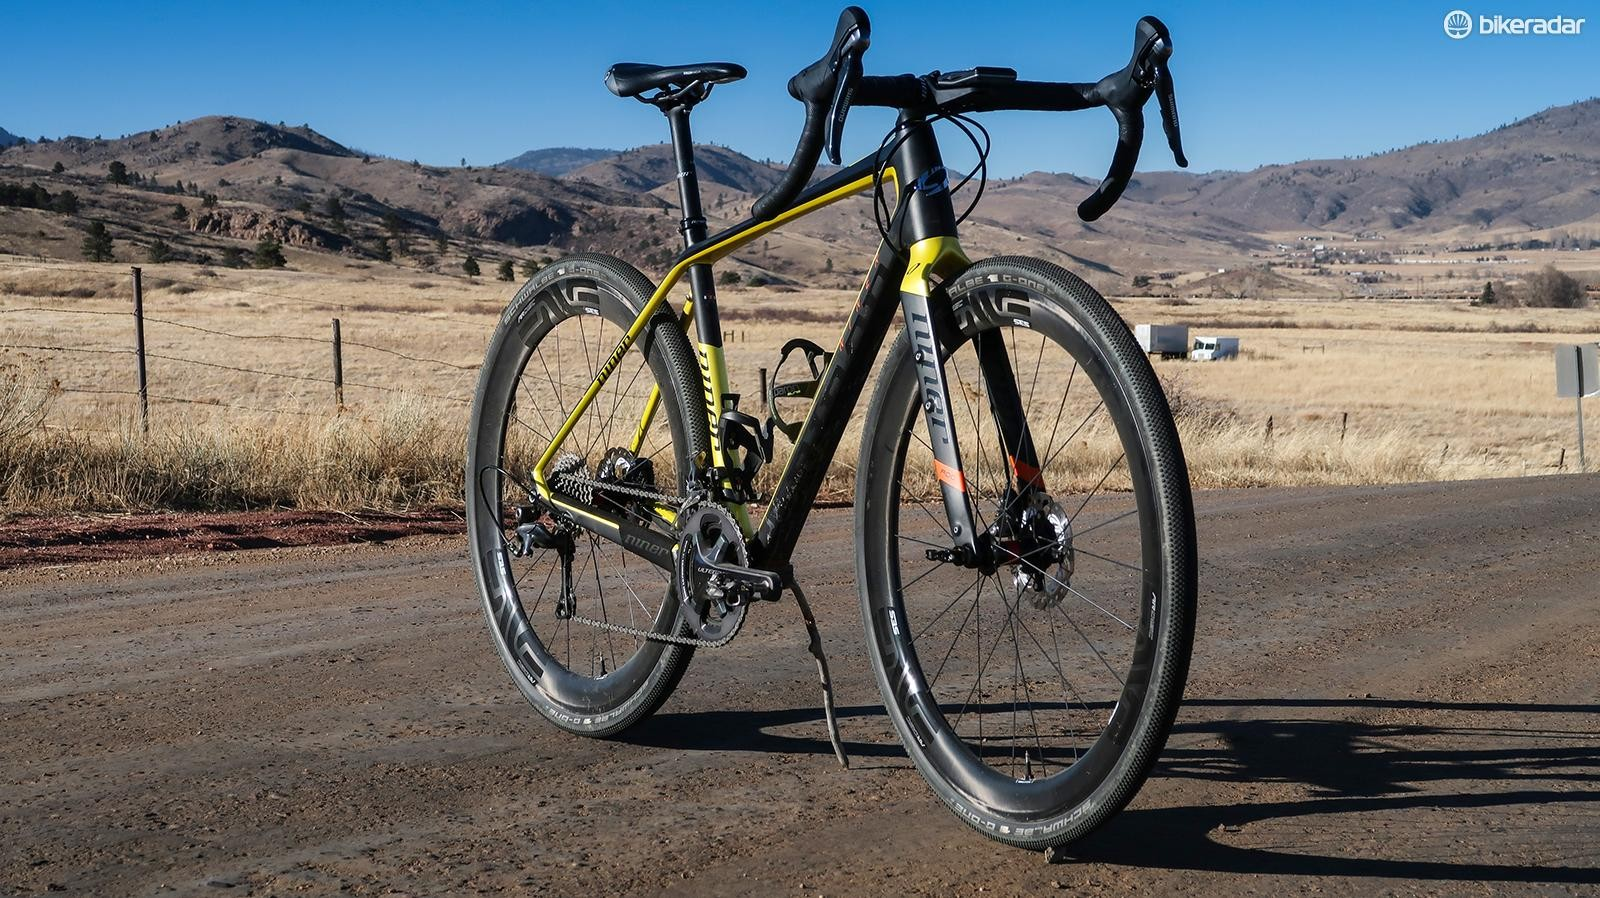 I used Niner's new RLT 9 RDO to take on the Old Man Winter Rally